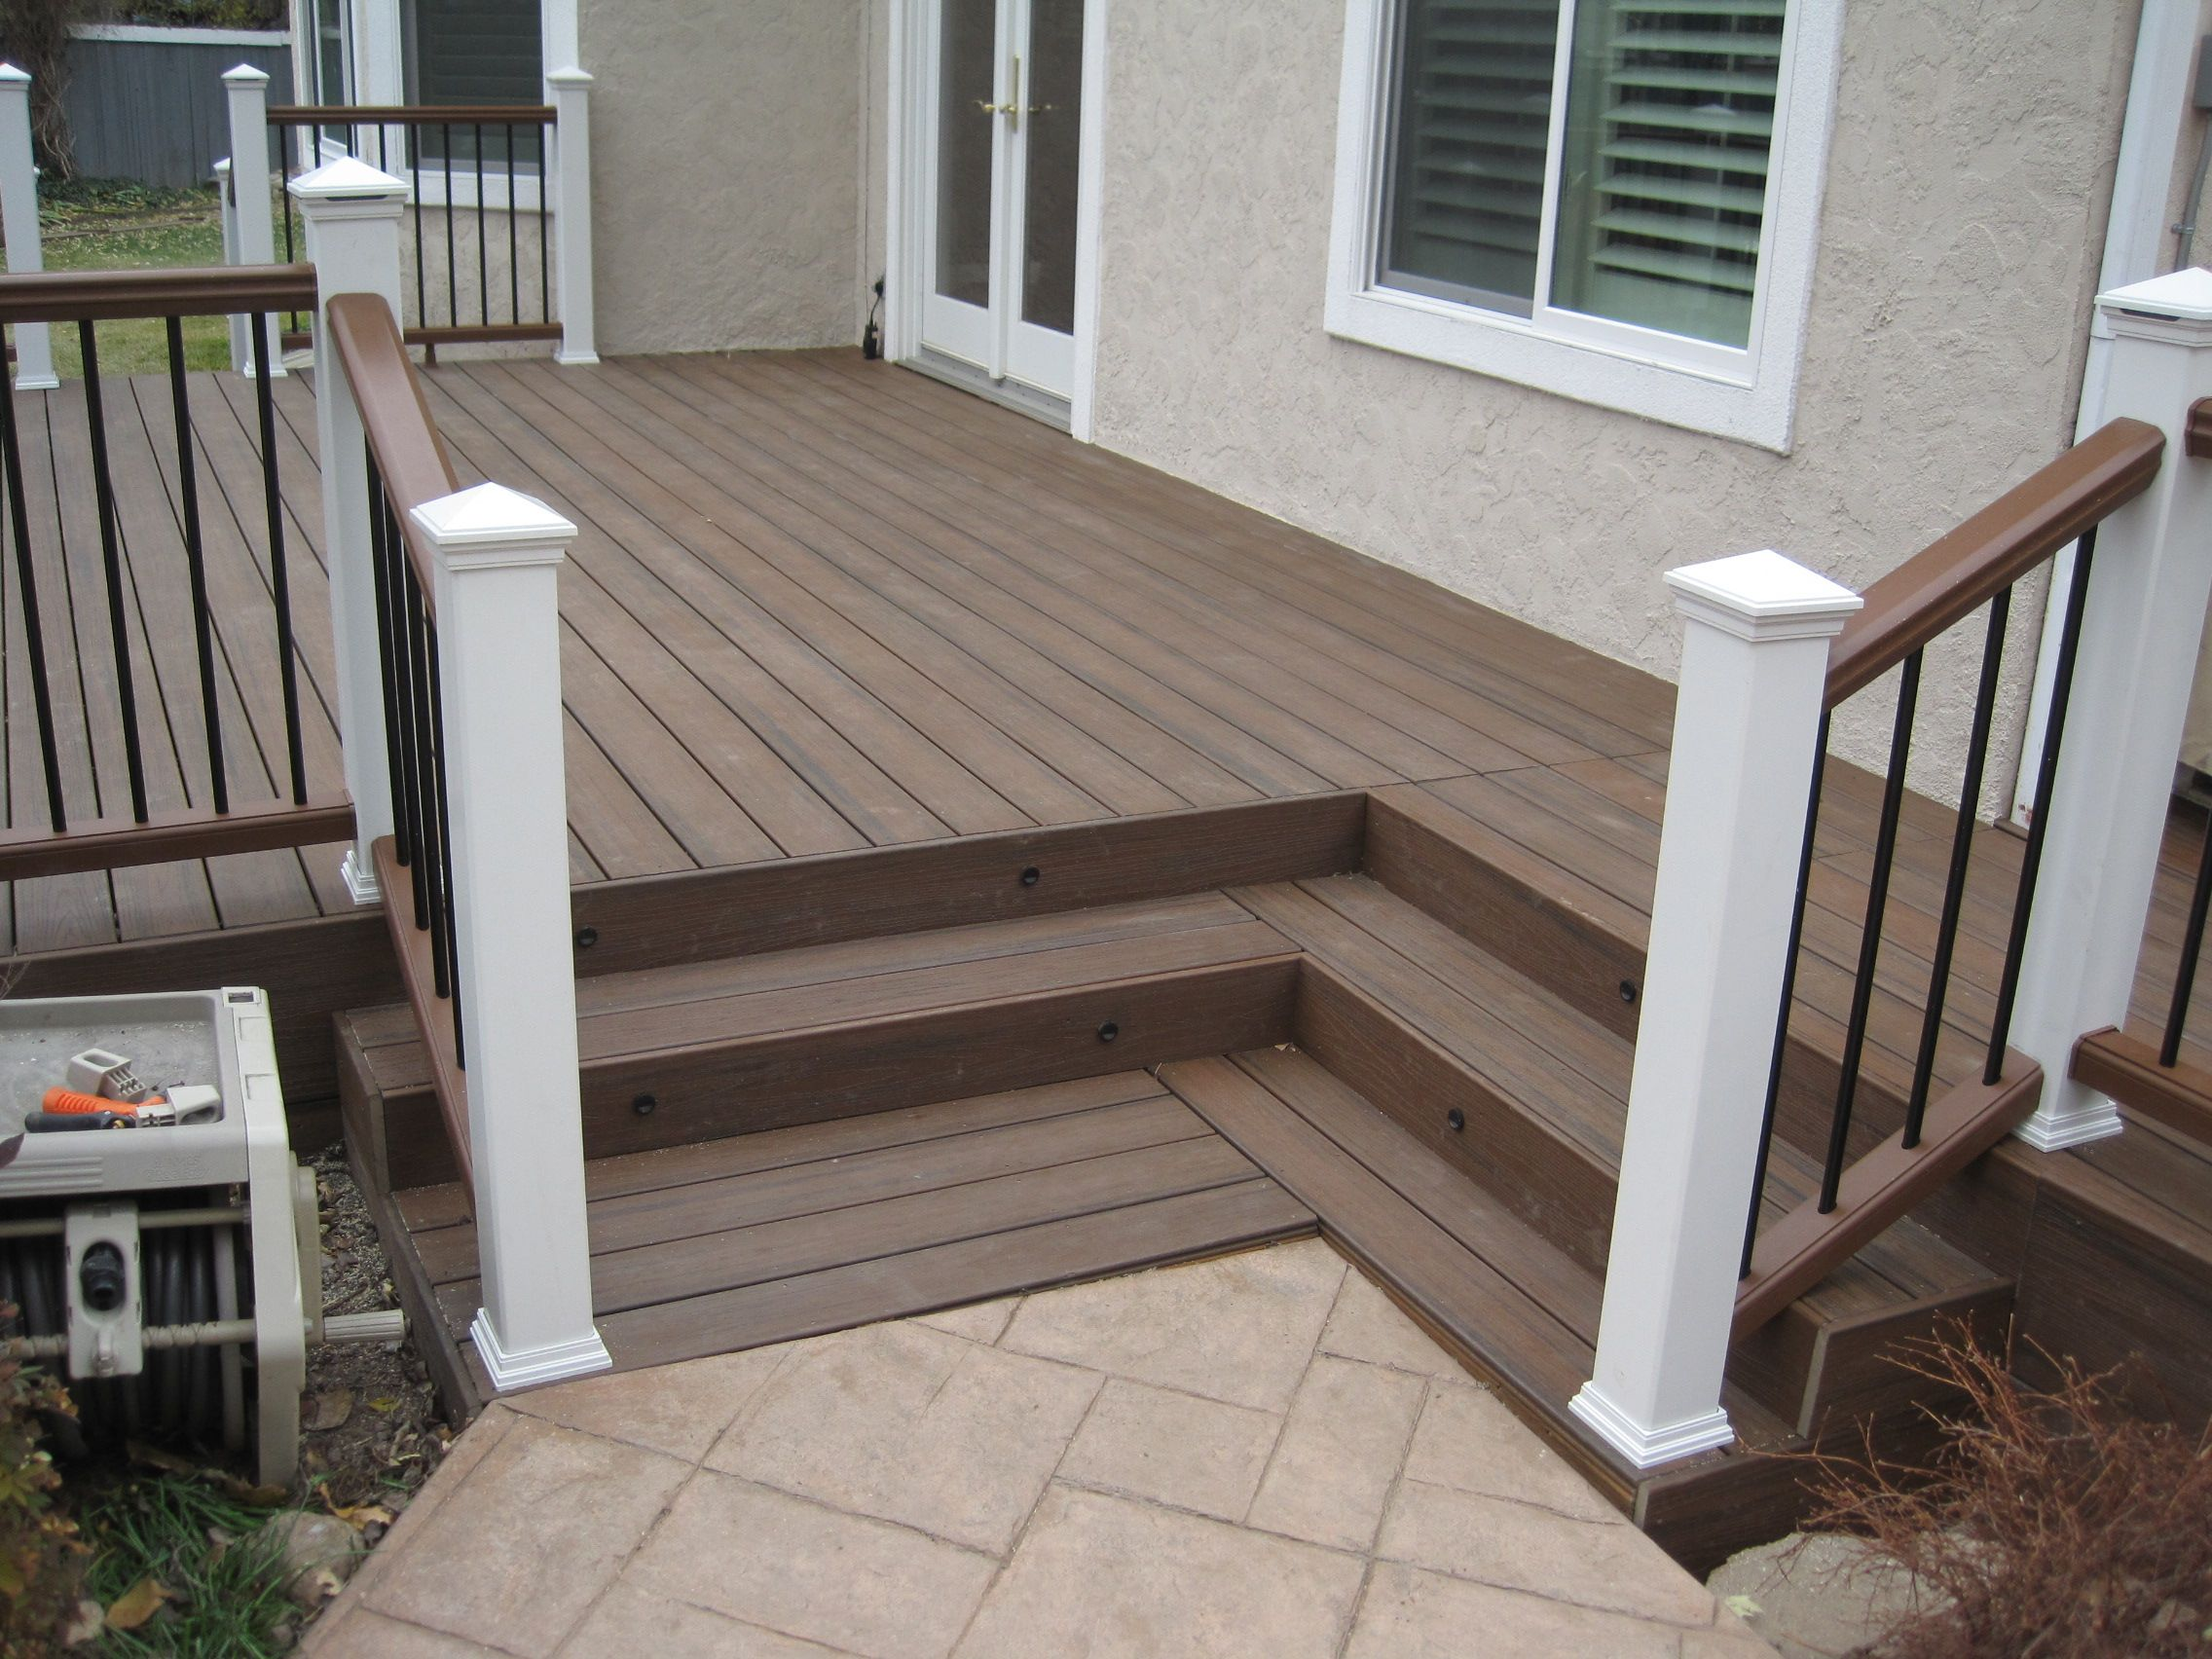 Standard trex decking cost with hight quality of wood for Best composite decking material reviews